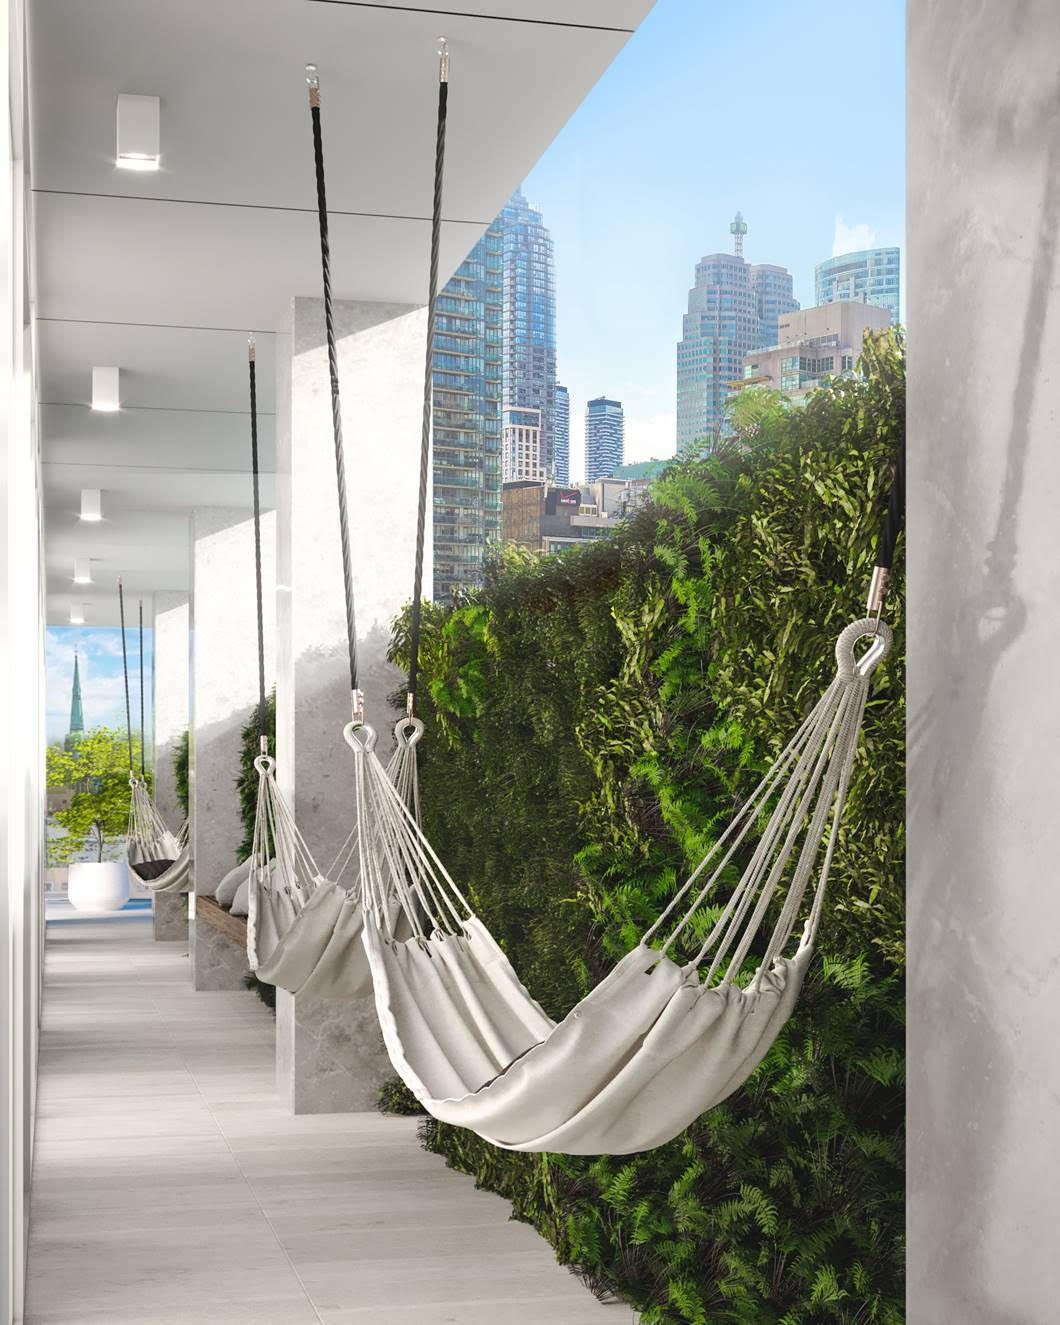 88 Queen Condos - Phase 2 Relax Amongst Living Walls and Floating Hammocks